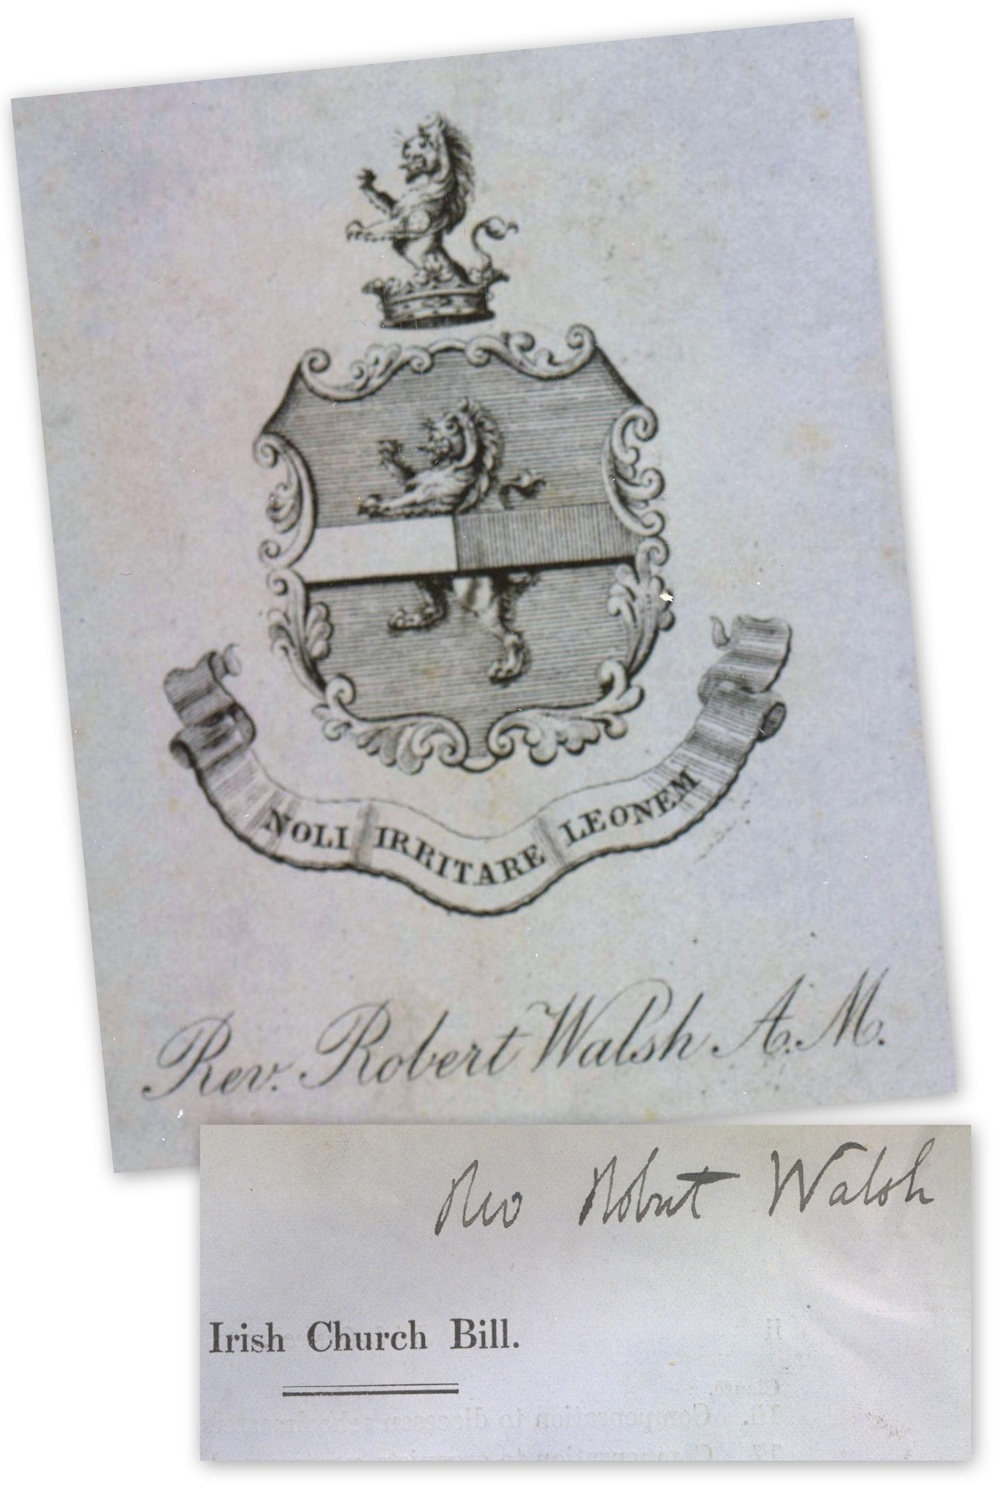 Walsh's personal book plate featuring the Walsh family arms and motto 'Noli irritare leonem' (Do not irritate the lions), RCB Library MS 297/1; Walsh's signature on his copy of the Irish Church Bill ; and the official notice of Walsh's sudden death on 24 February 1917, as published in the Church of Ireland Gazette, 2 March 1917.